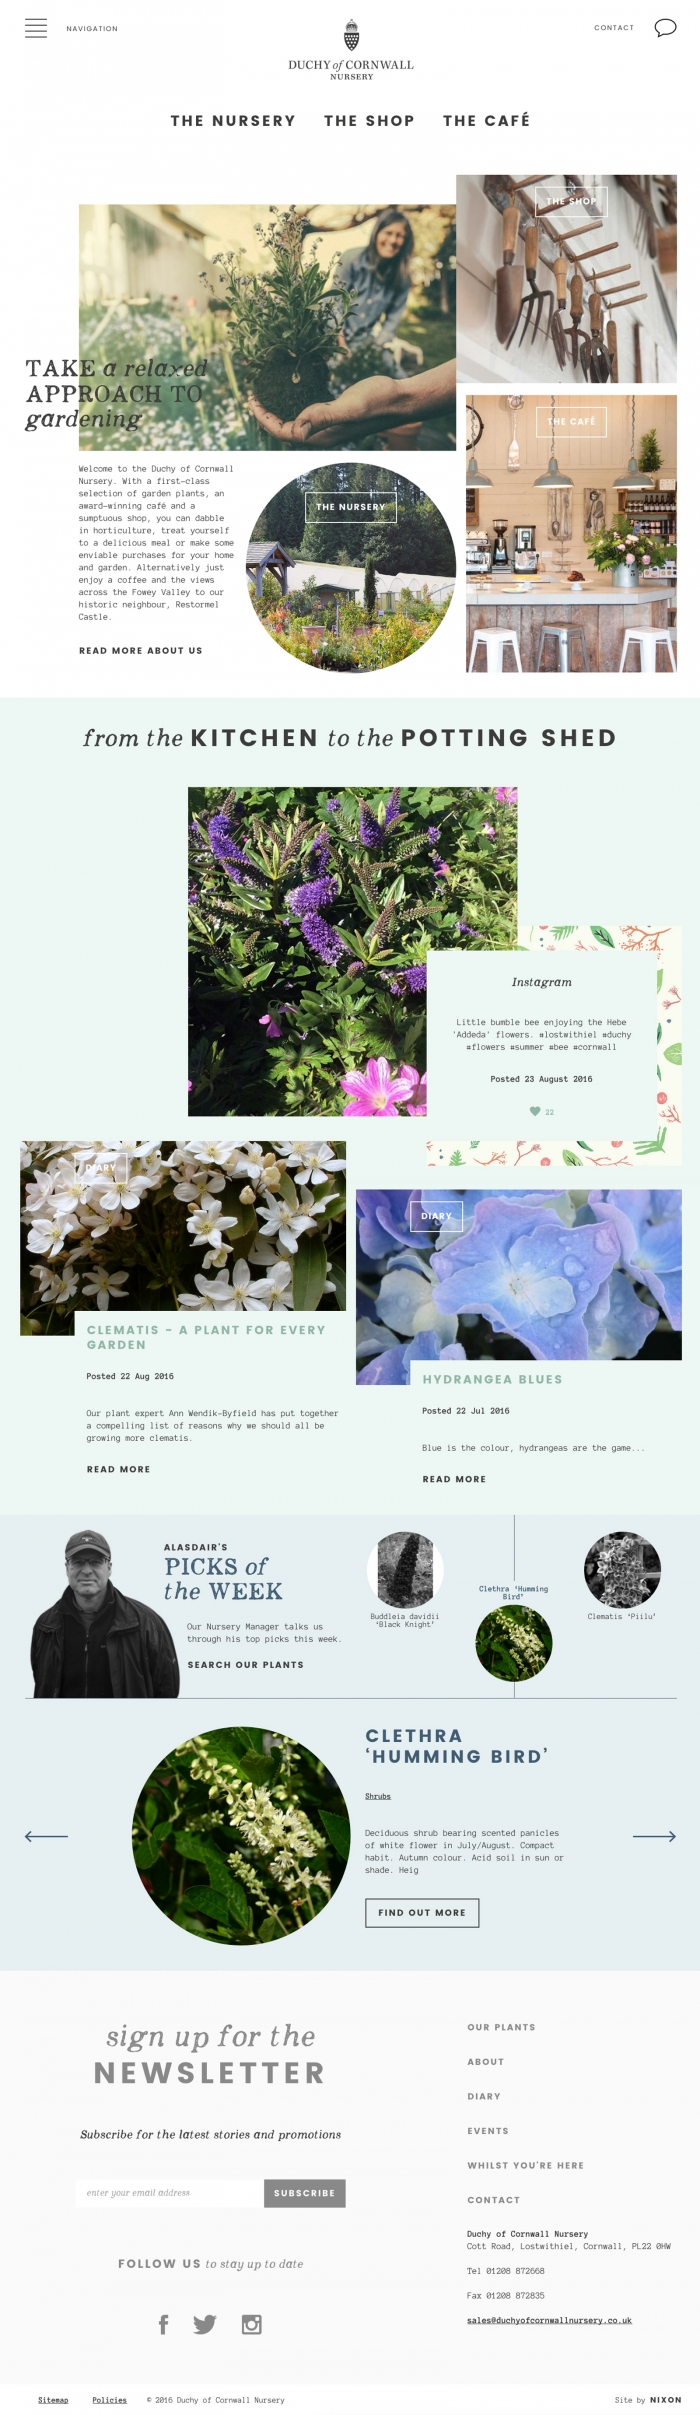 The Duchy of Cornwall Nursery website homepage.